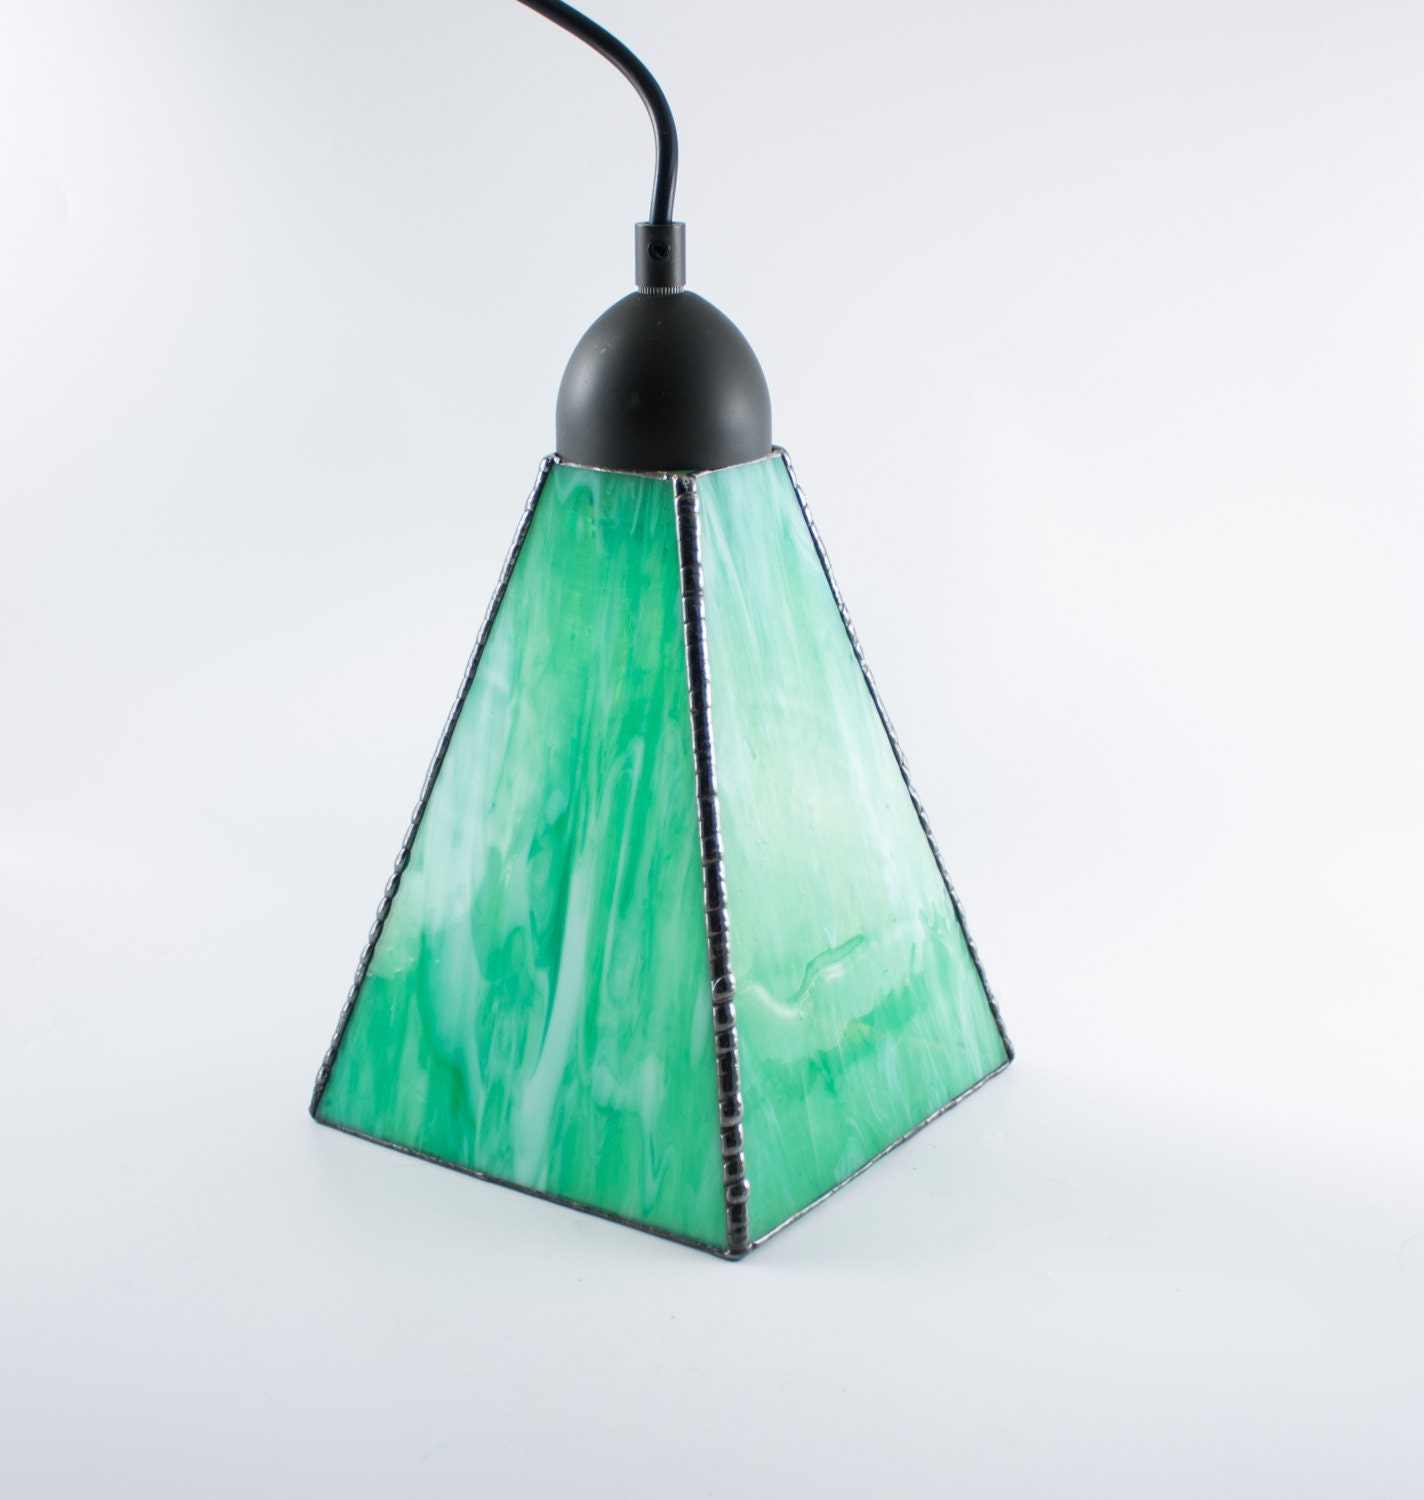 Stained Glass Pendant Light Green And White Hanging Lamp